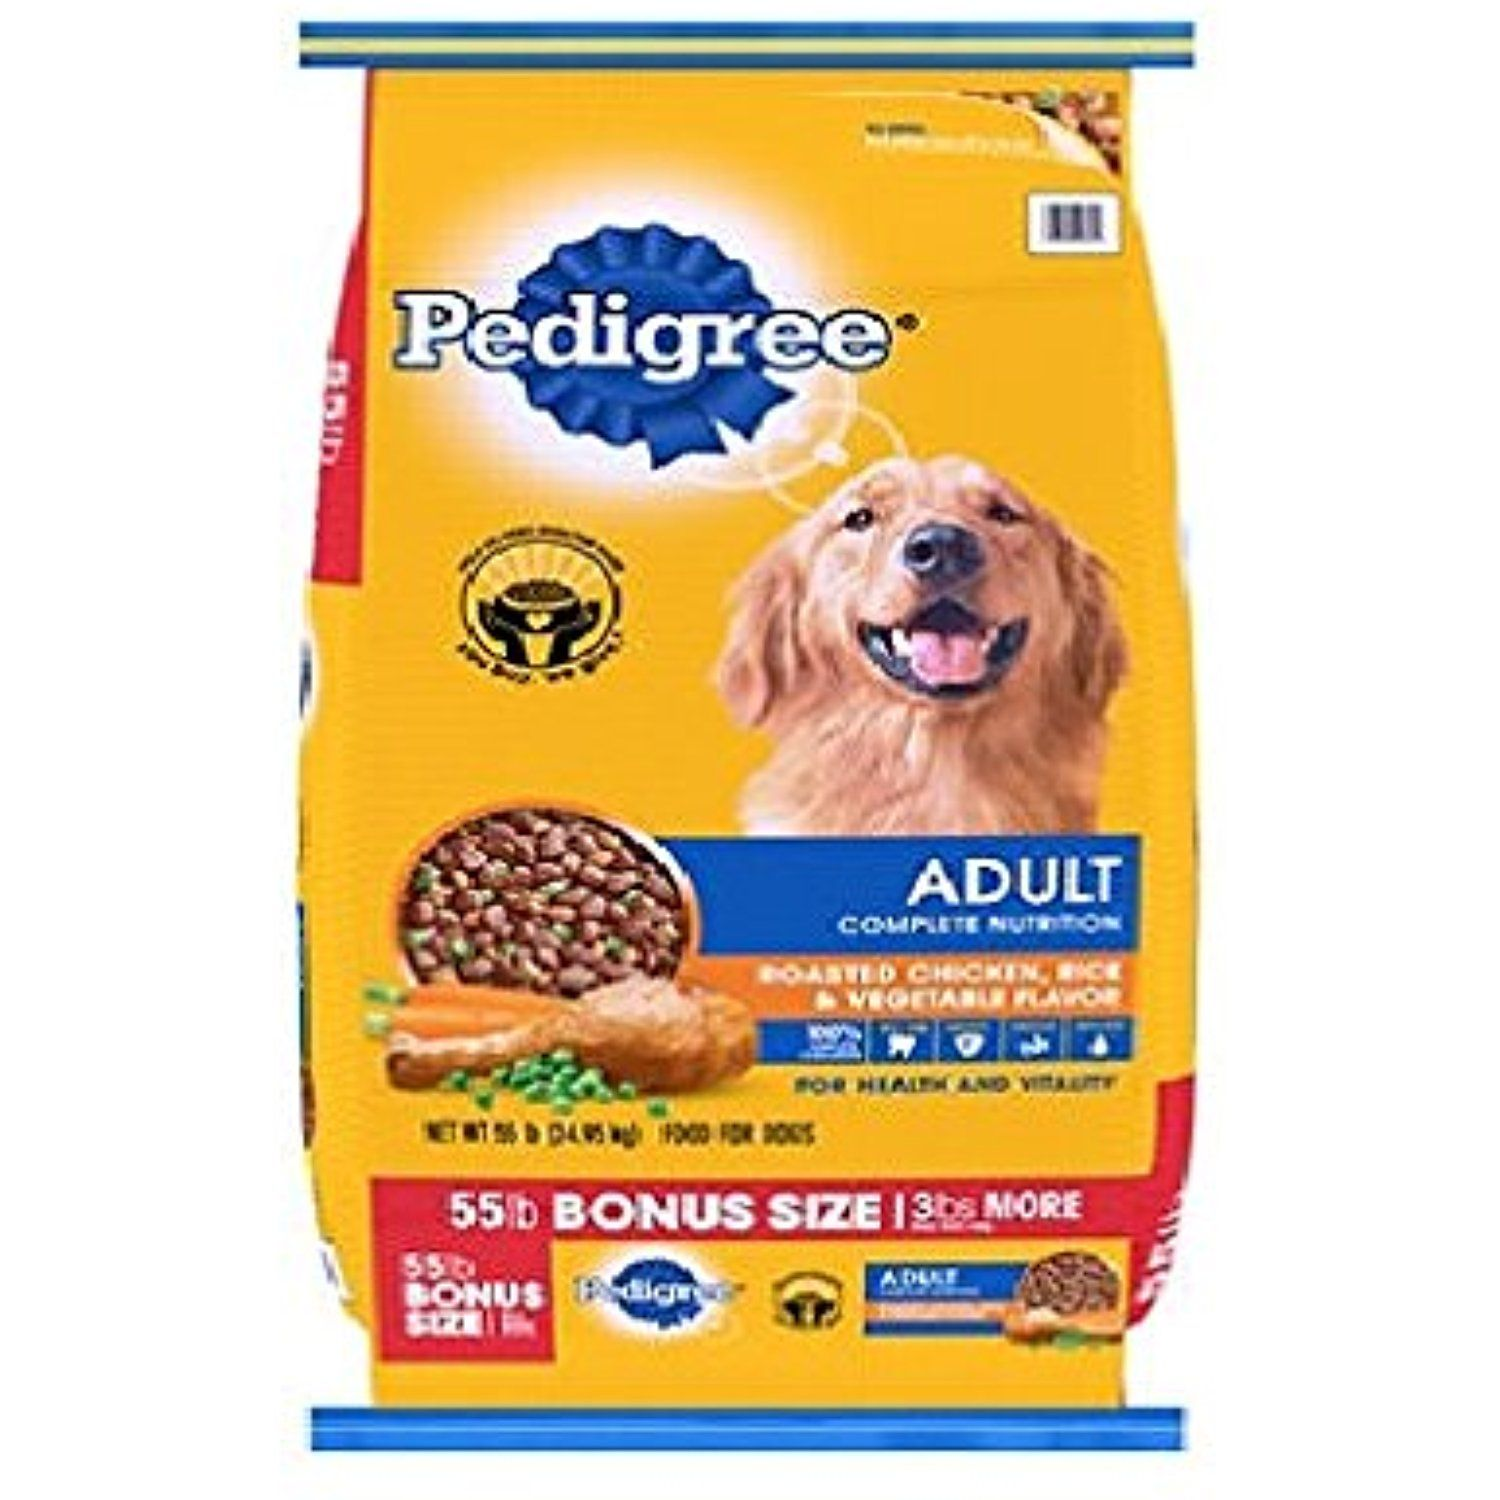 Pedigree Adult Complete Nutrition 55 Lbs You Can Click